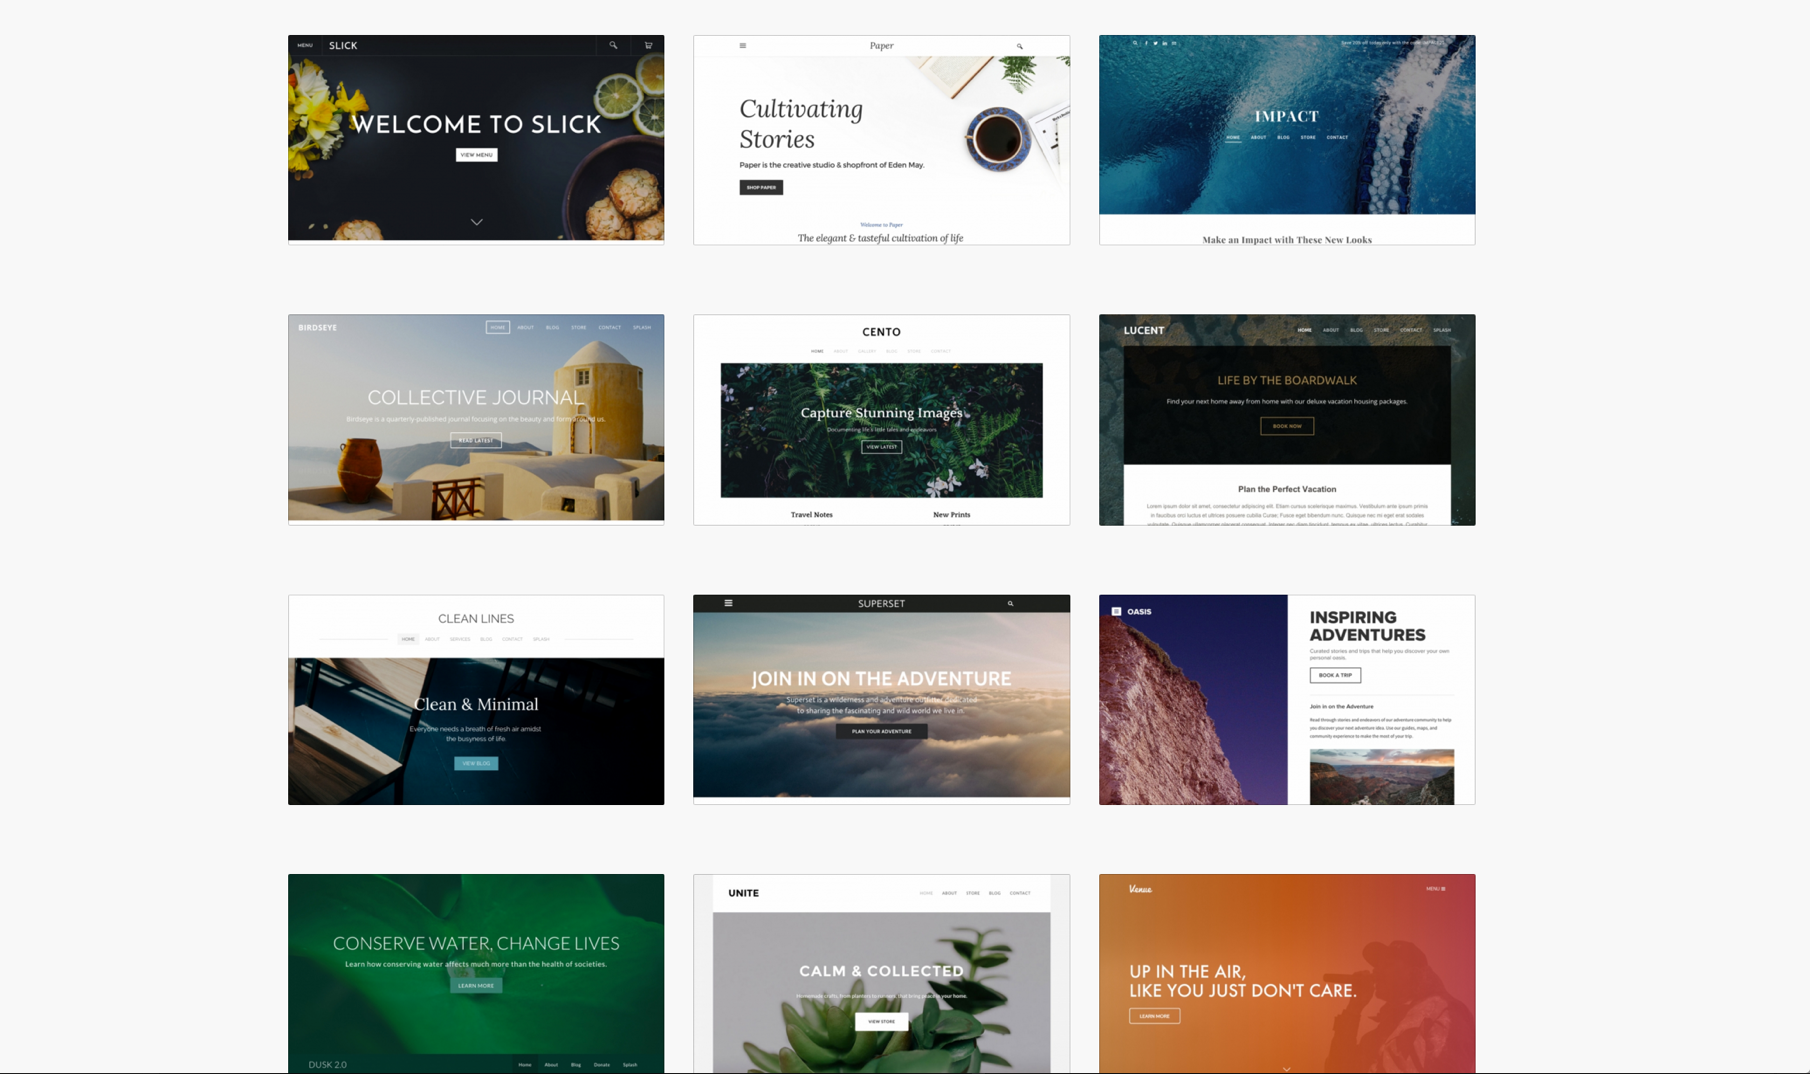 Free Website Templates - Build a Beautiful Site, Blog or Store